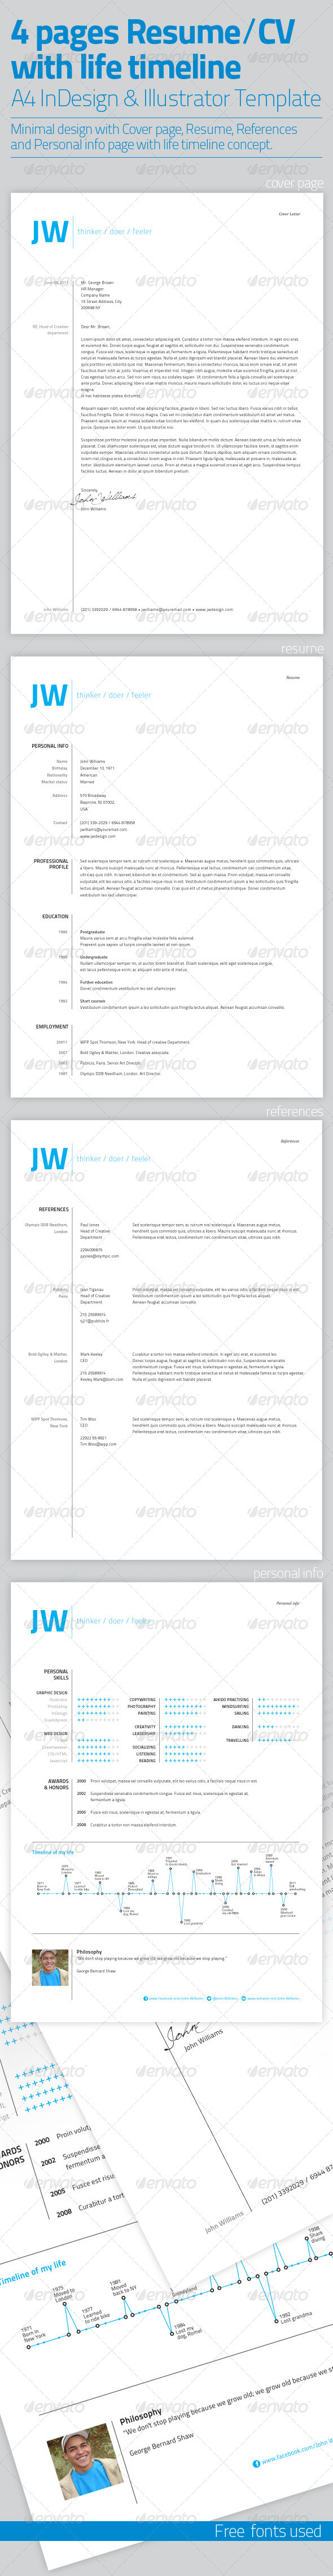 Resume Template | 4 Pages with Life Timeline